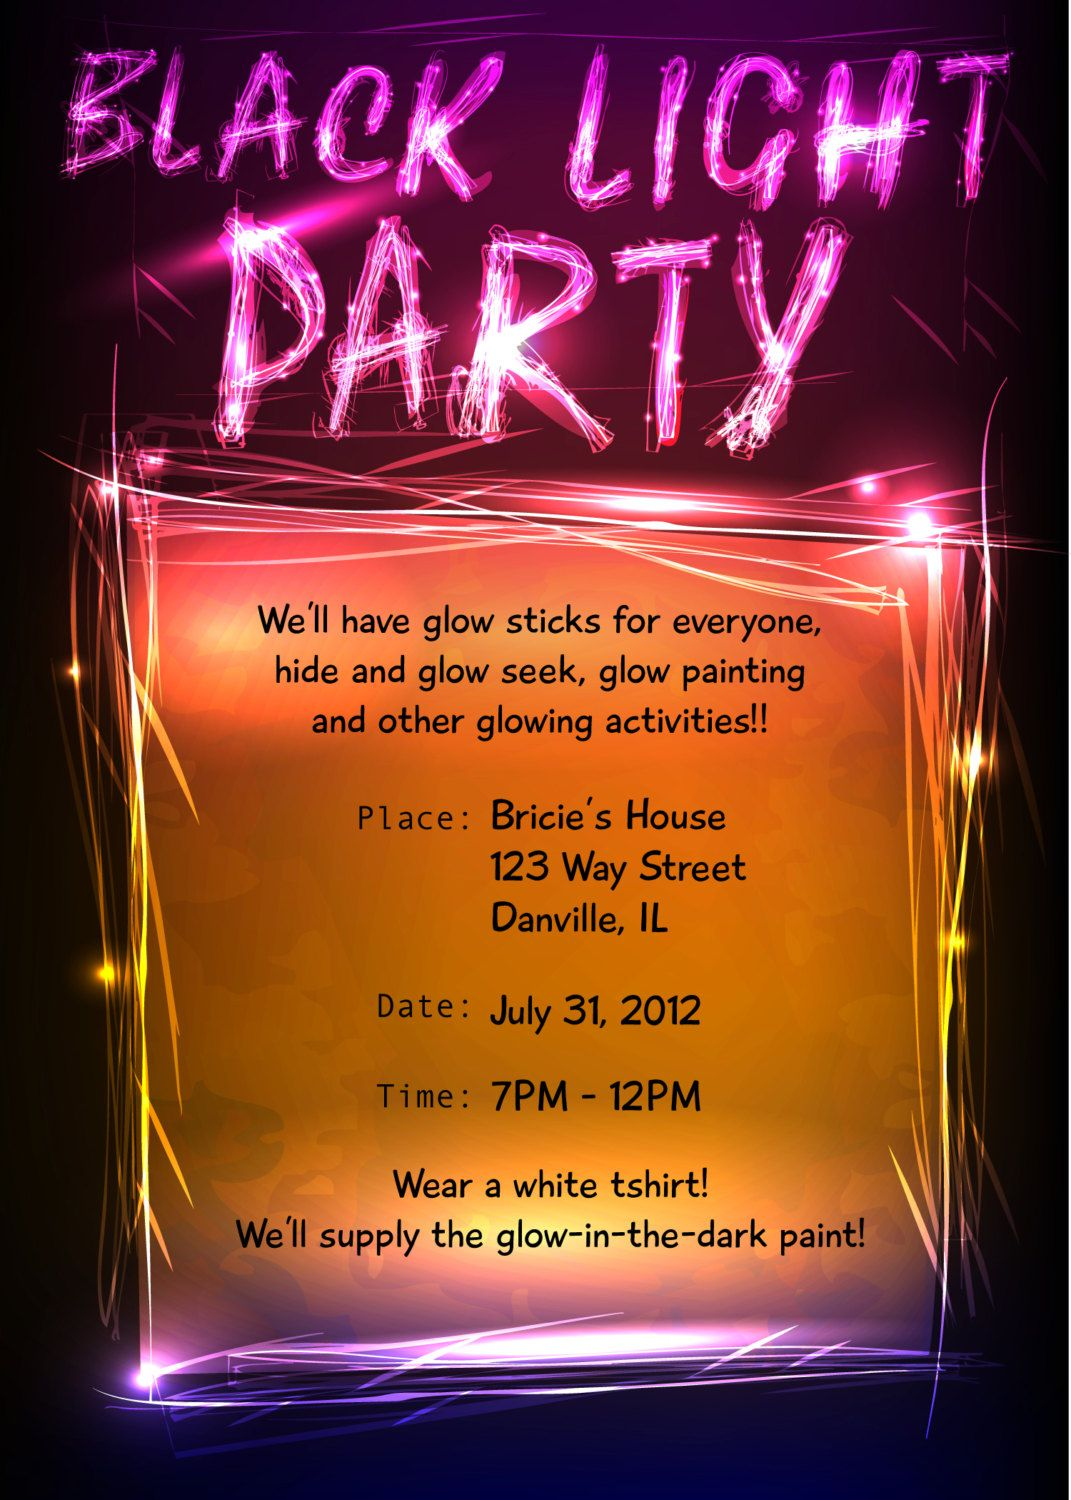 Black Light Party Invitation Joanna Szewczyk Gierak Szewczyk